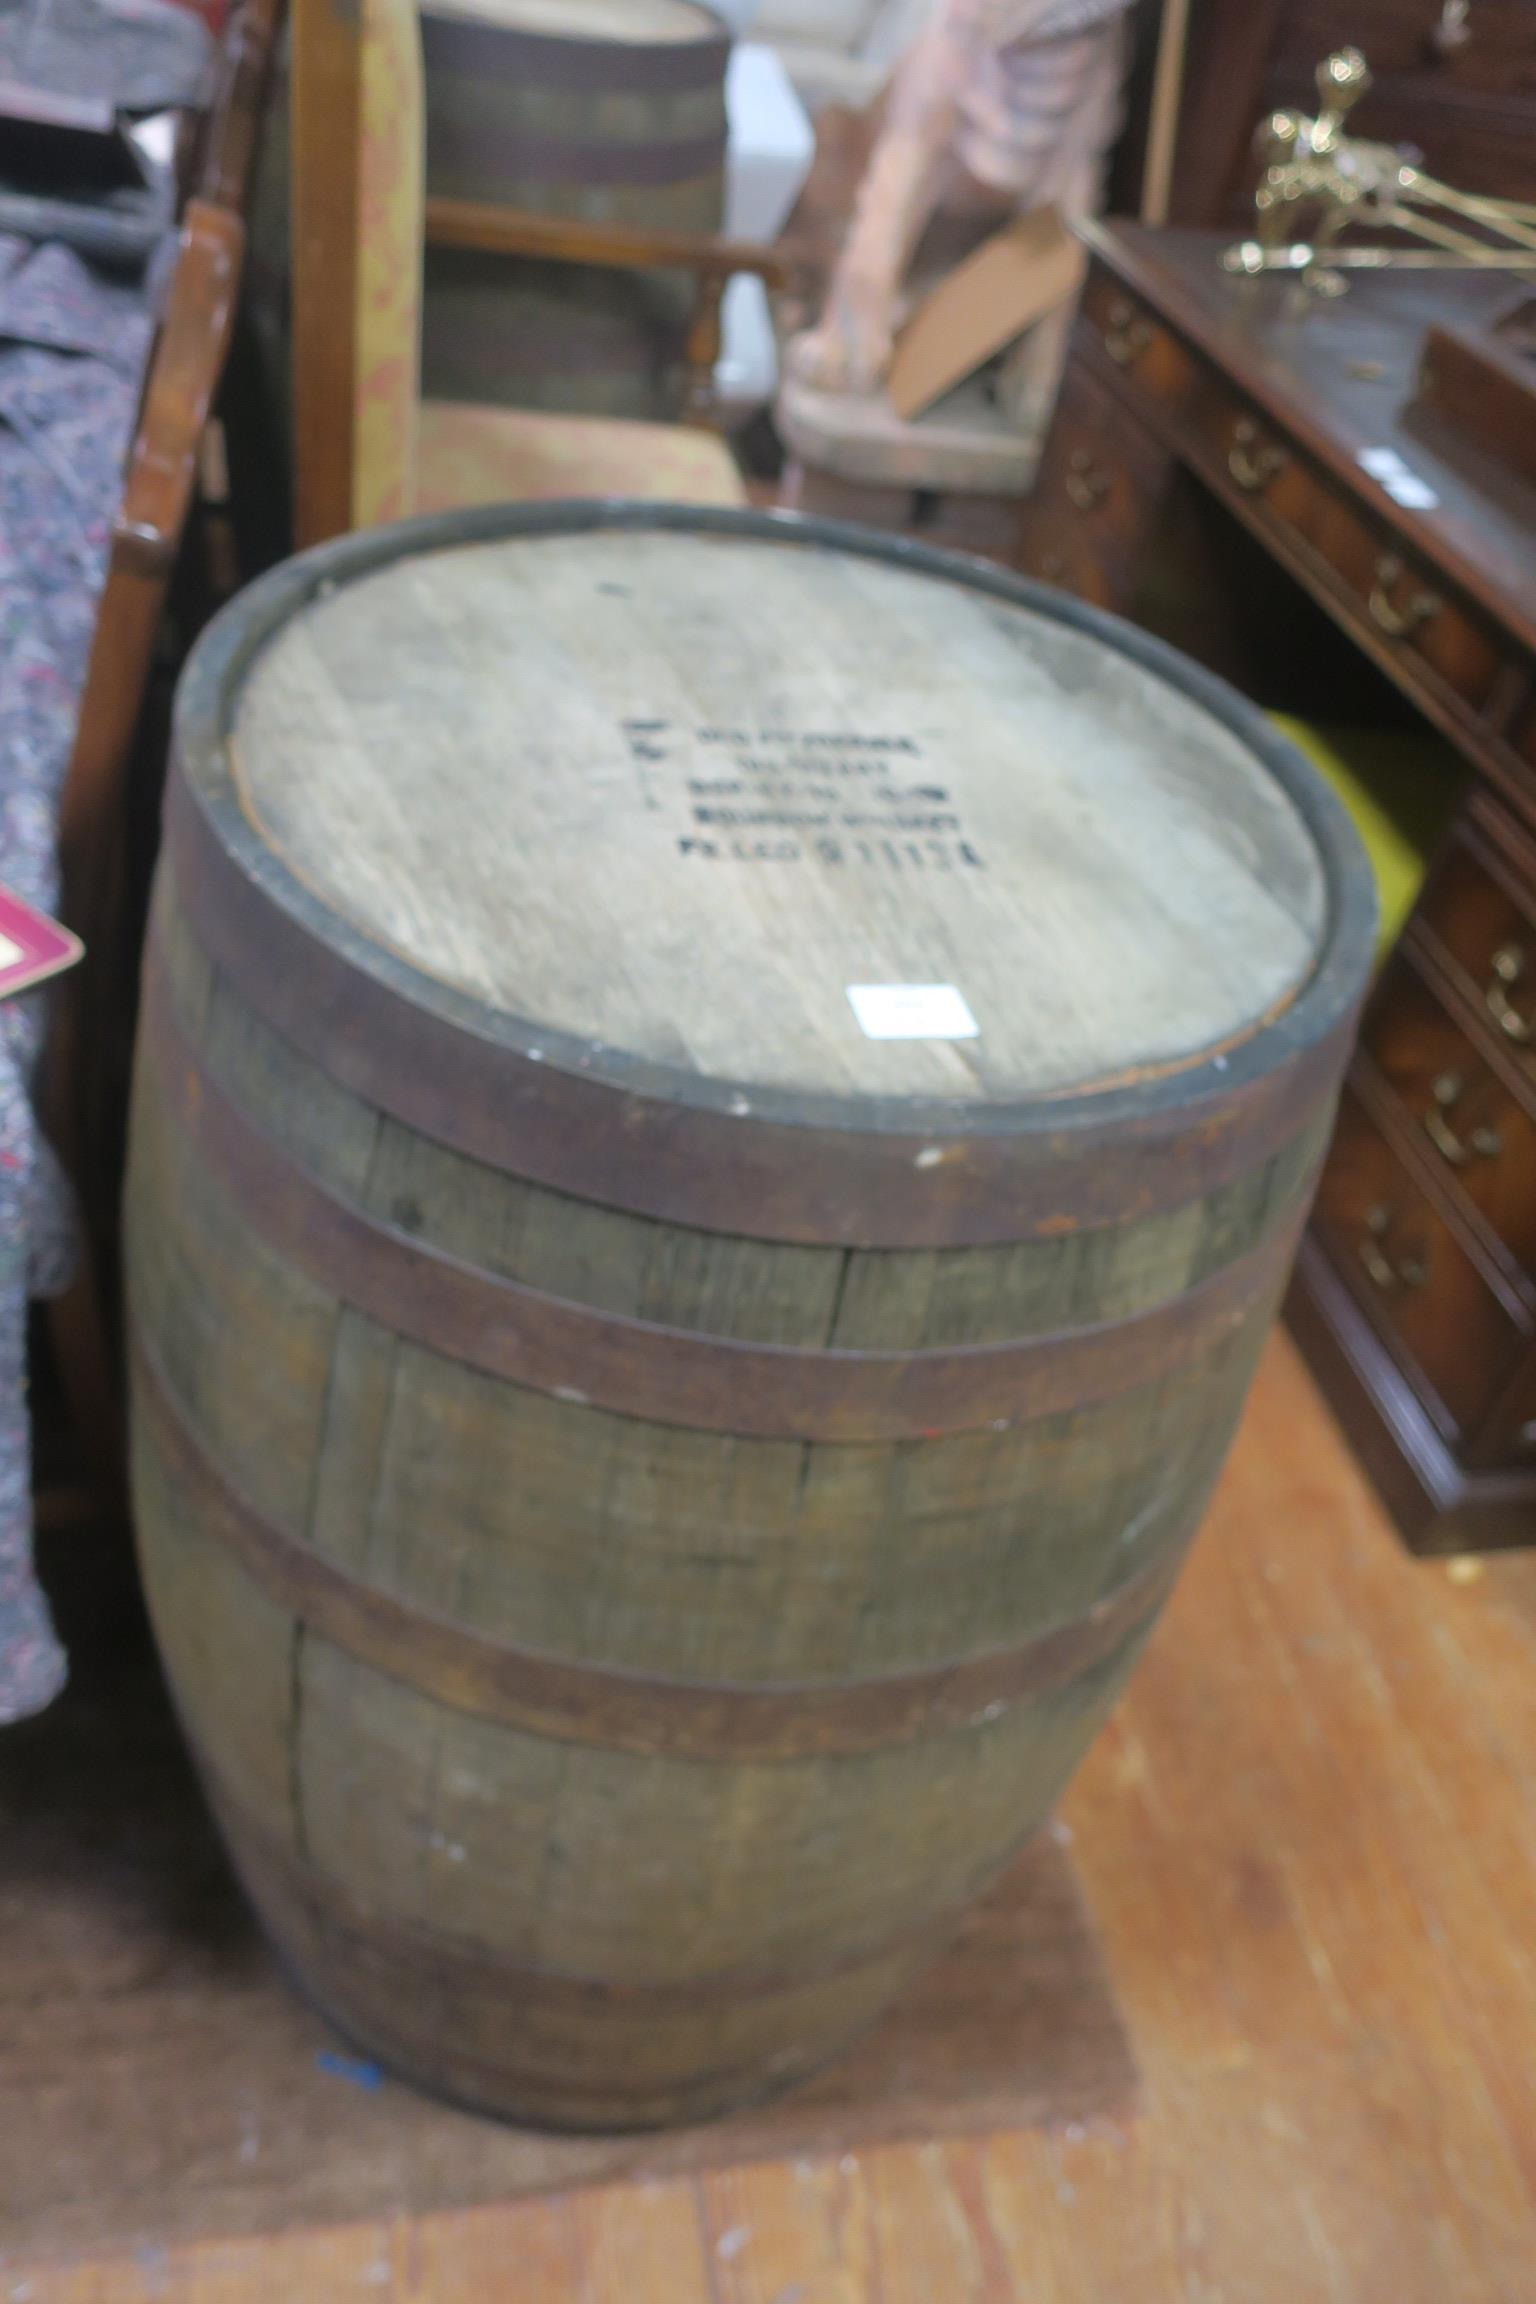 Lot 49 - A PAIR OF OAK AND STEEL BOUND SPIRIT BARRELS inscribed Old Fitzgerald Distillery Bourbon Whiskey